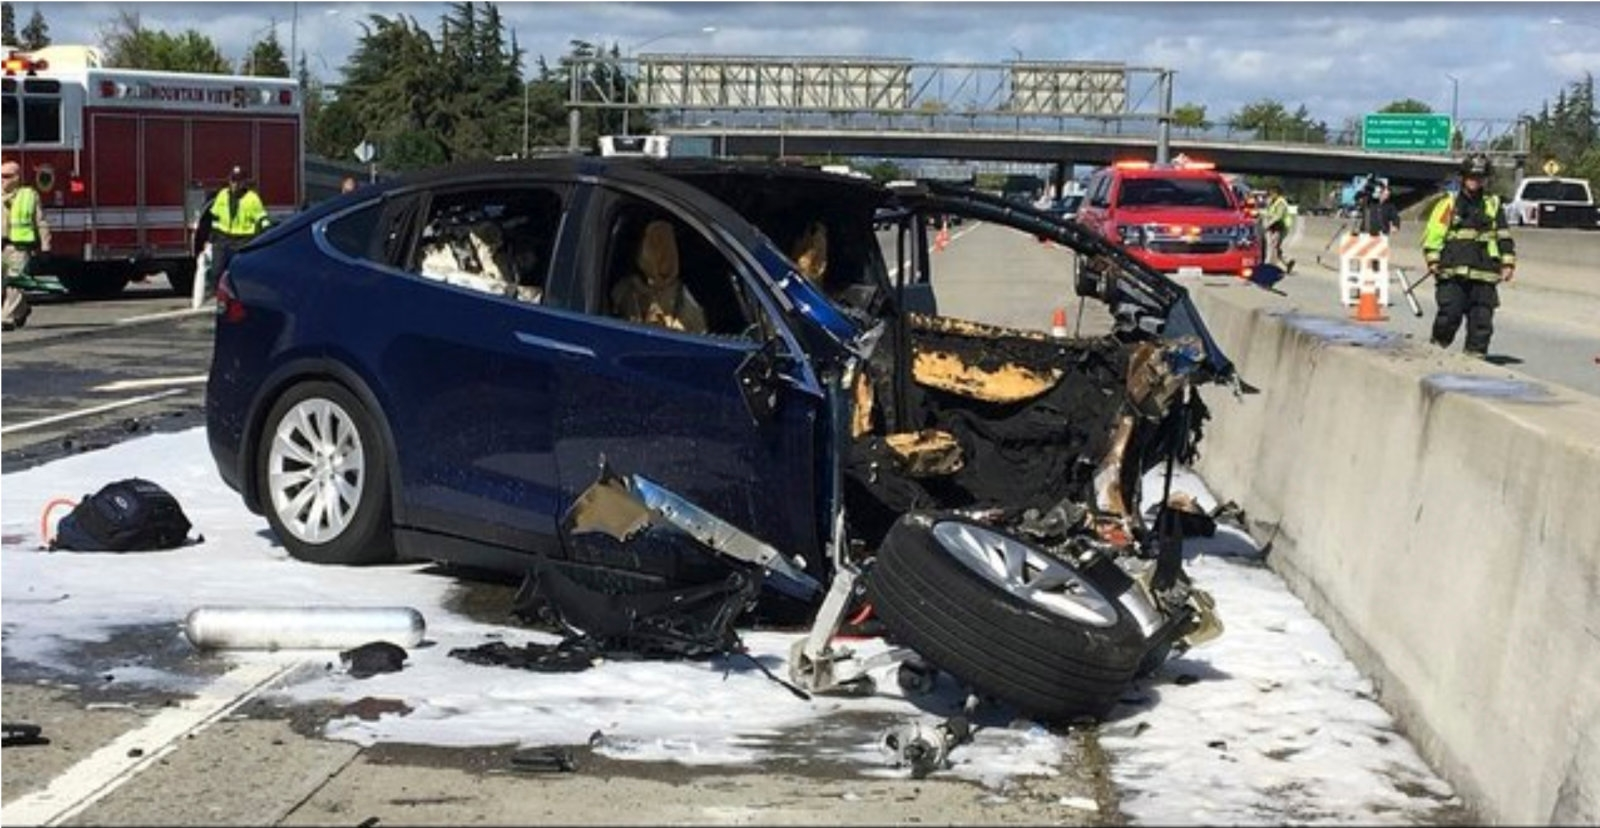 Tesla sued over fatal 2018 Model X crash with Autopilot engaged | DeviceDaily.com